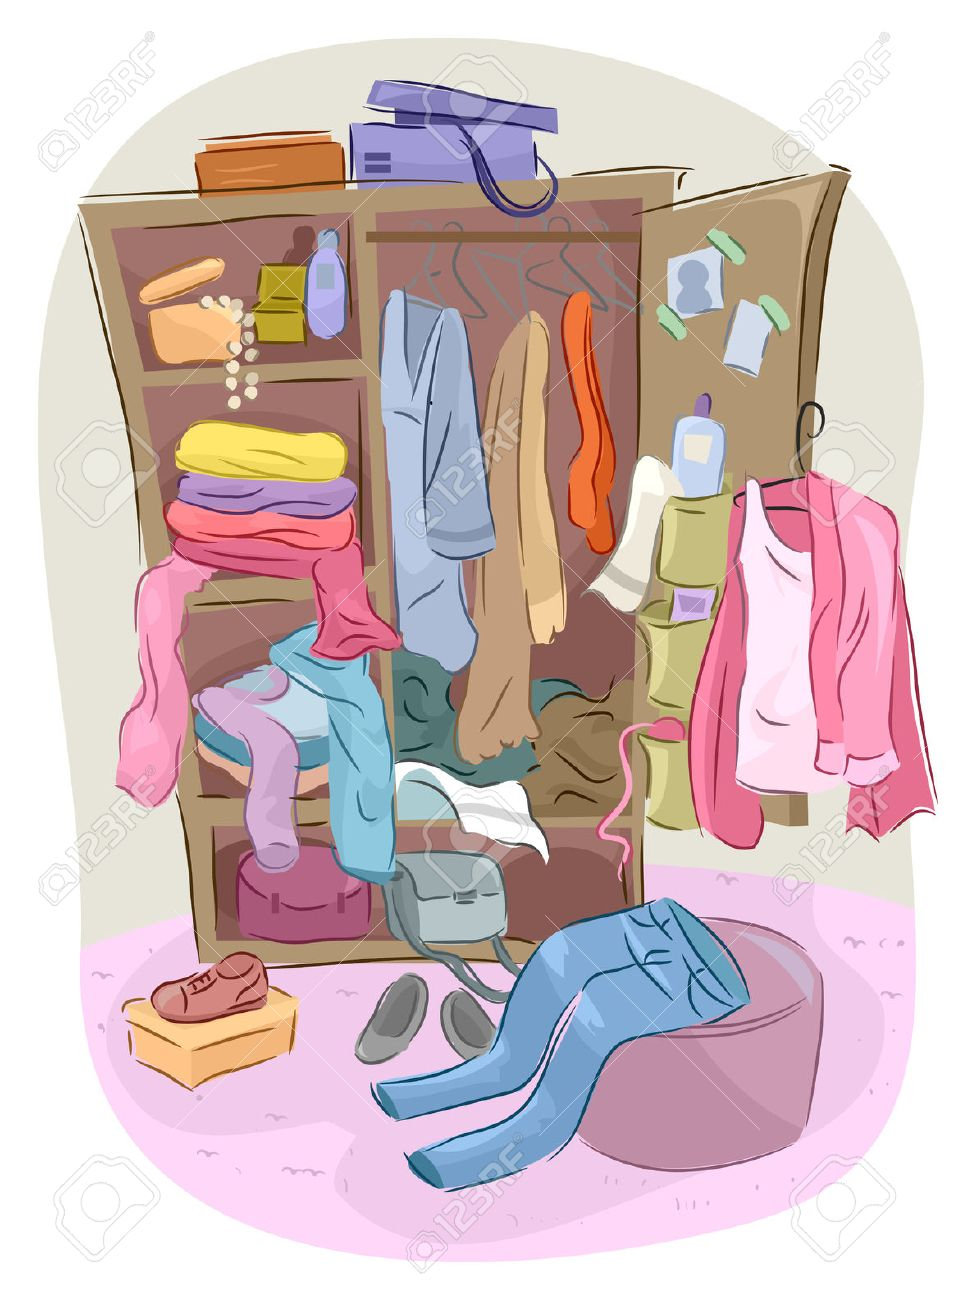 Illustration Of A Closet Overflowing With Clutter Stock